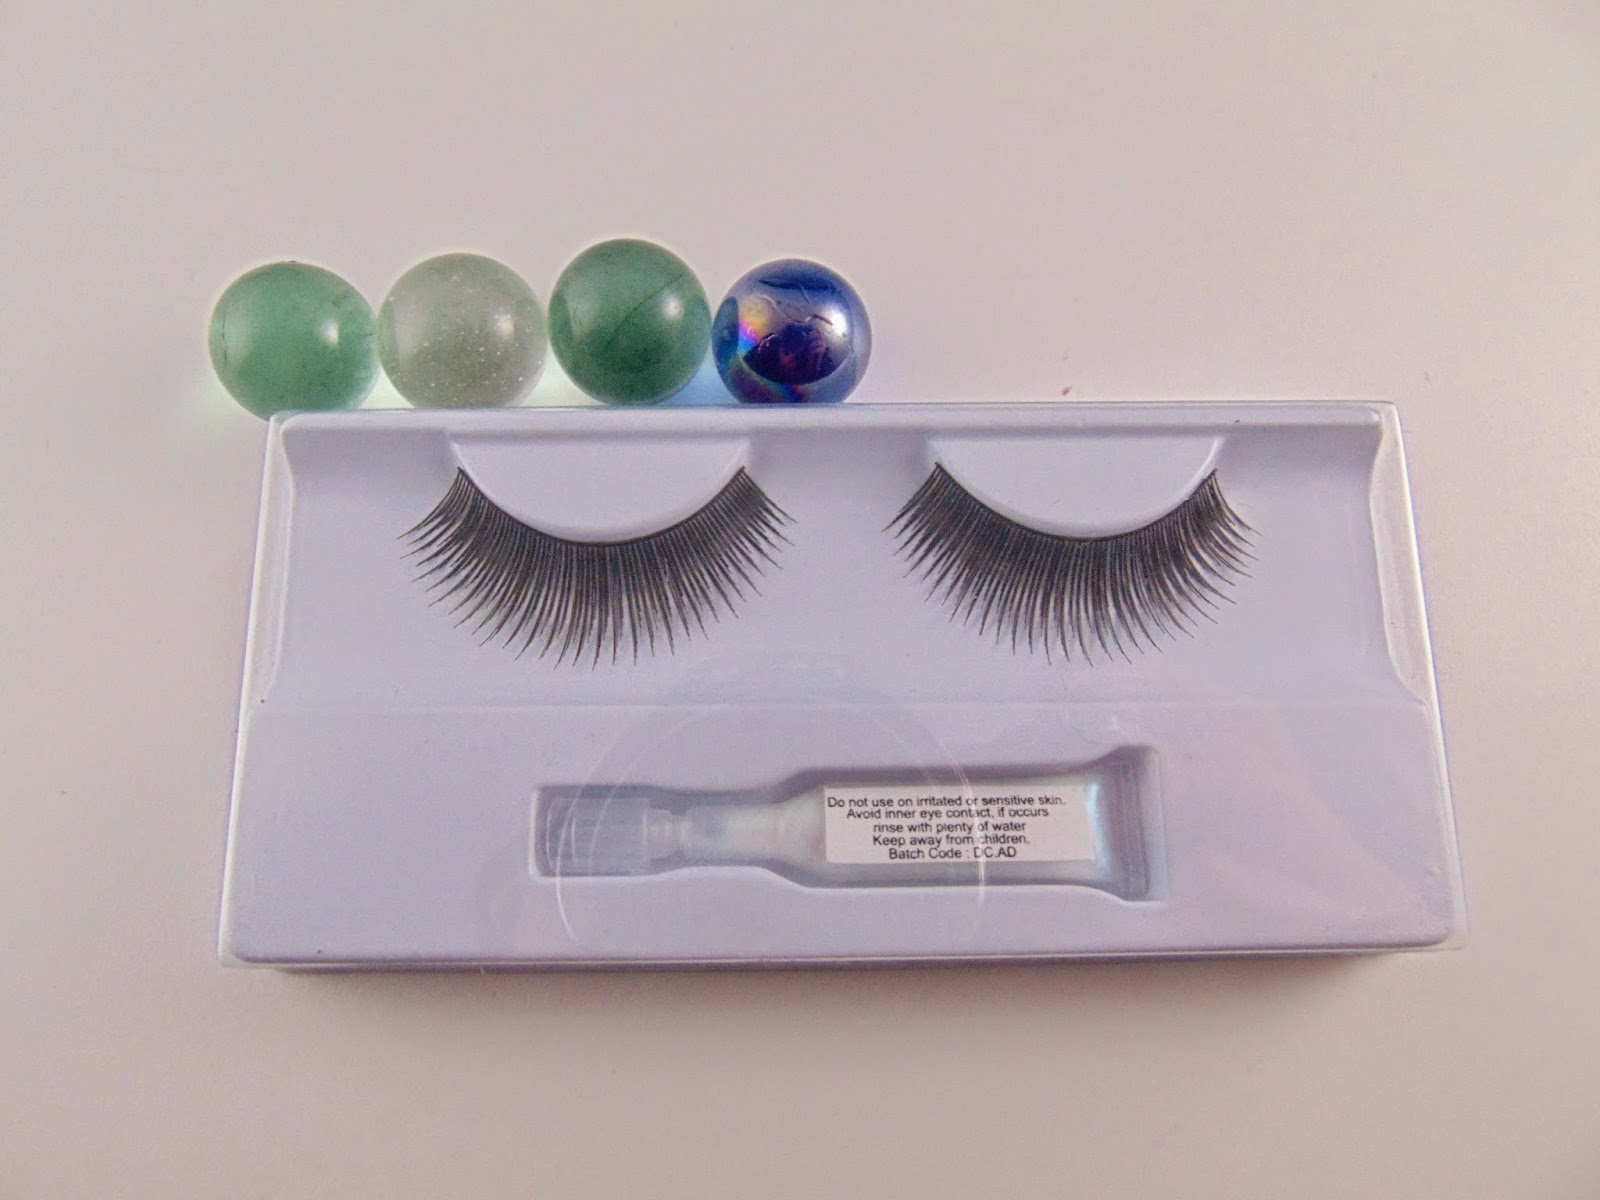 Essence Fake Lashes - www.annitschkasblog.de